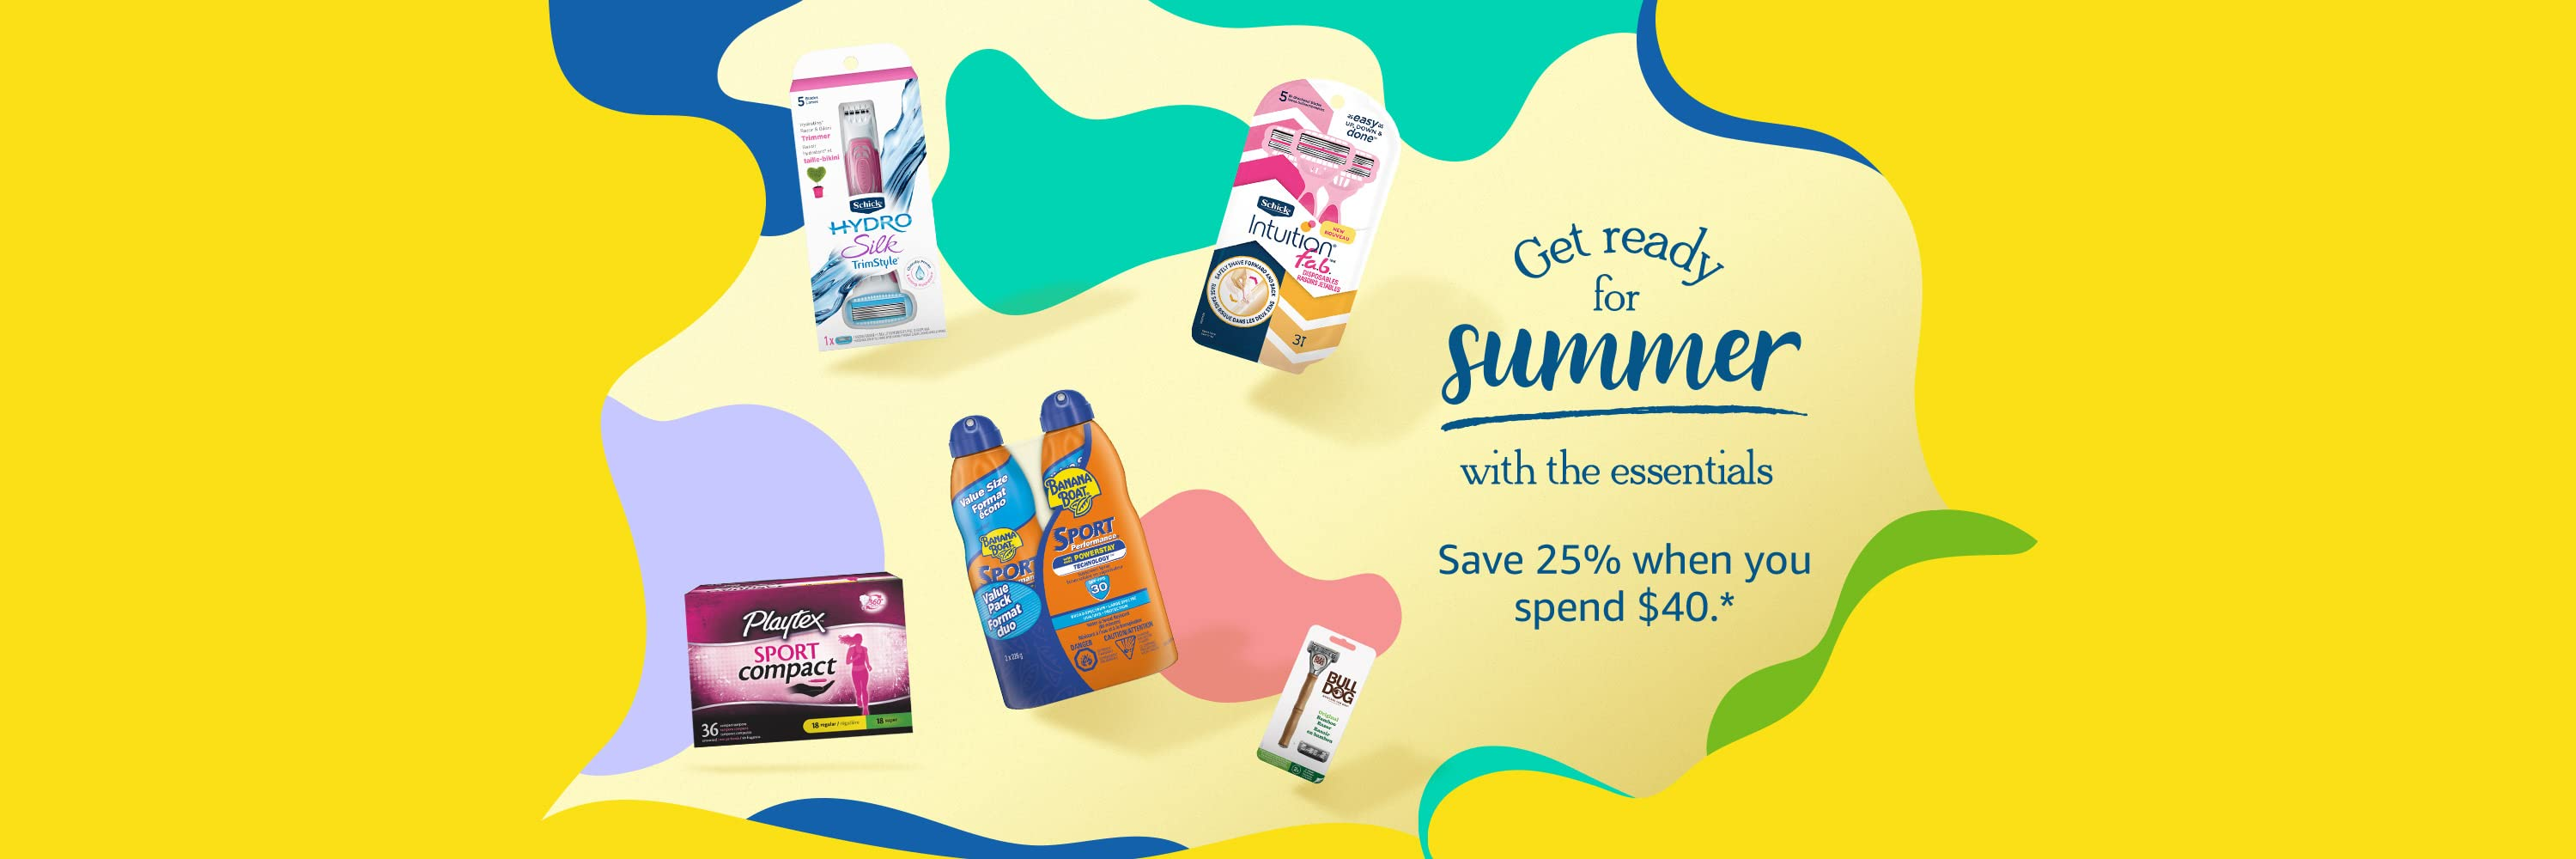 Get ready for summer with the essentials. Save 25 percent when you spend 40 dollars. Terms and conditions apply.